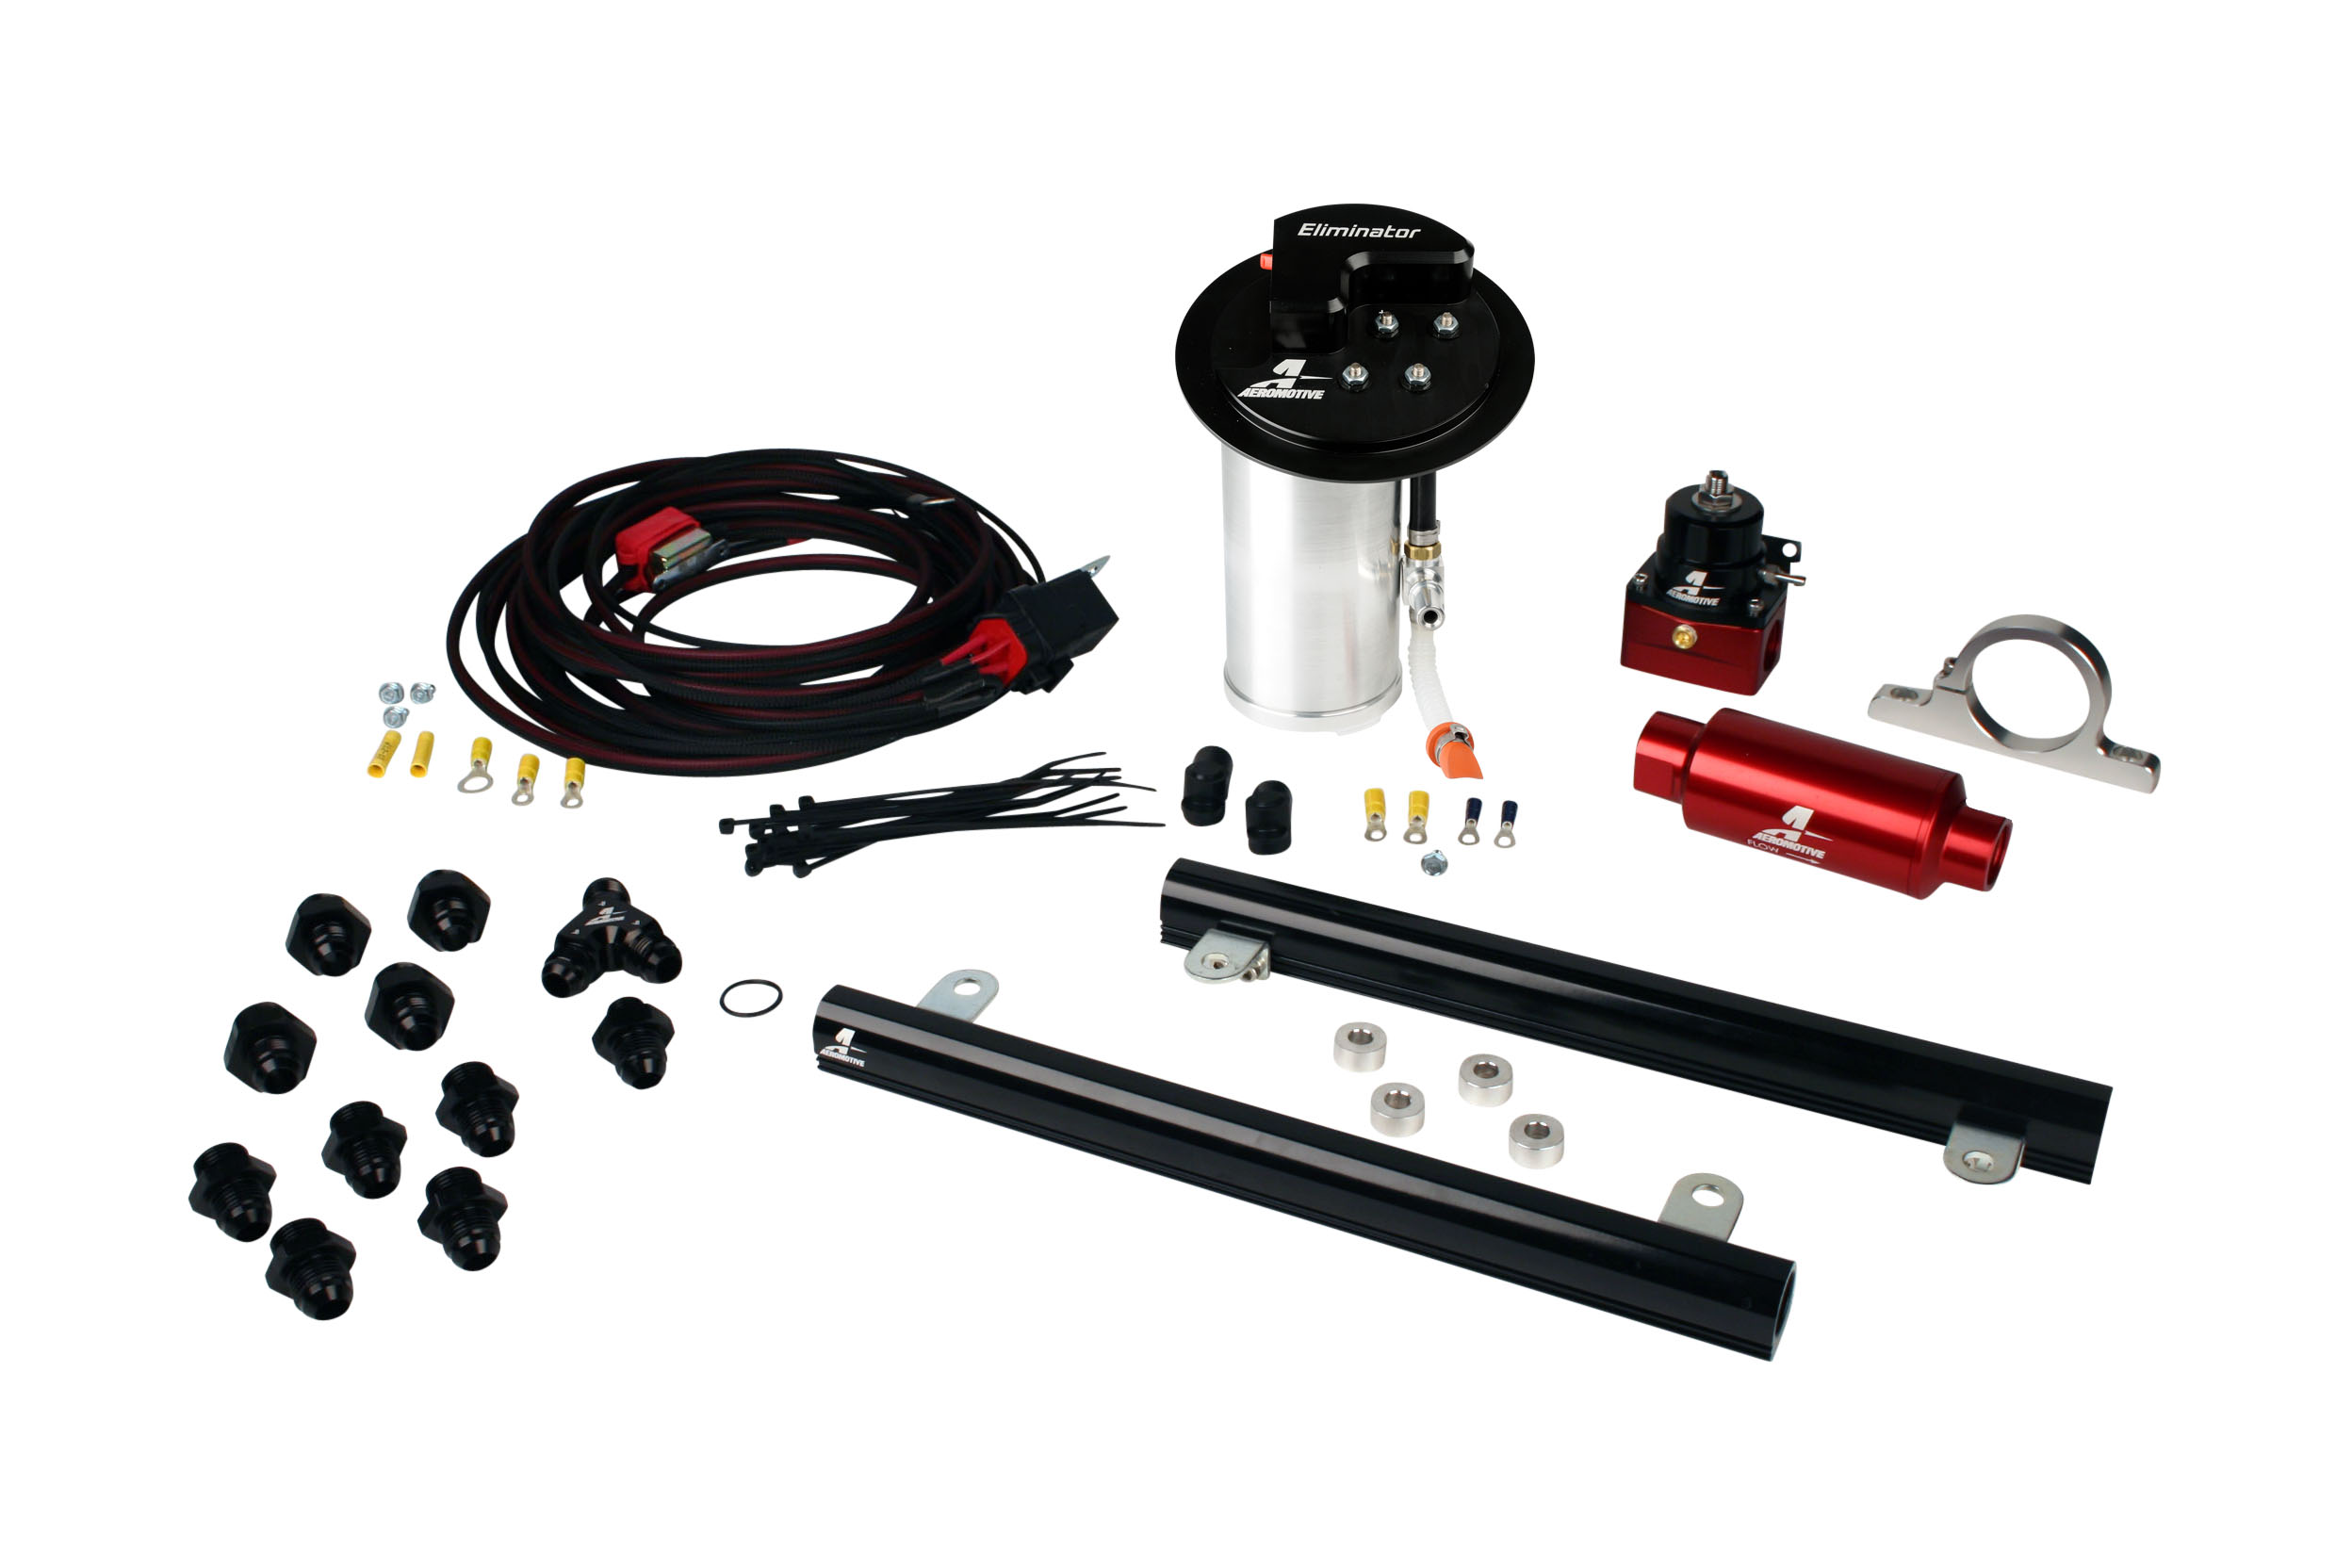 2010-2017 Ford Mustang GT Aeromotive Stealth A1000 Race Fuel System w/5.4L CJ Fuel Rails